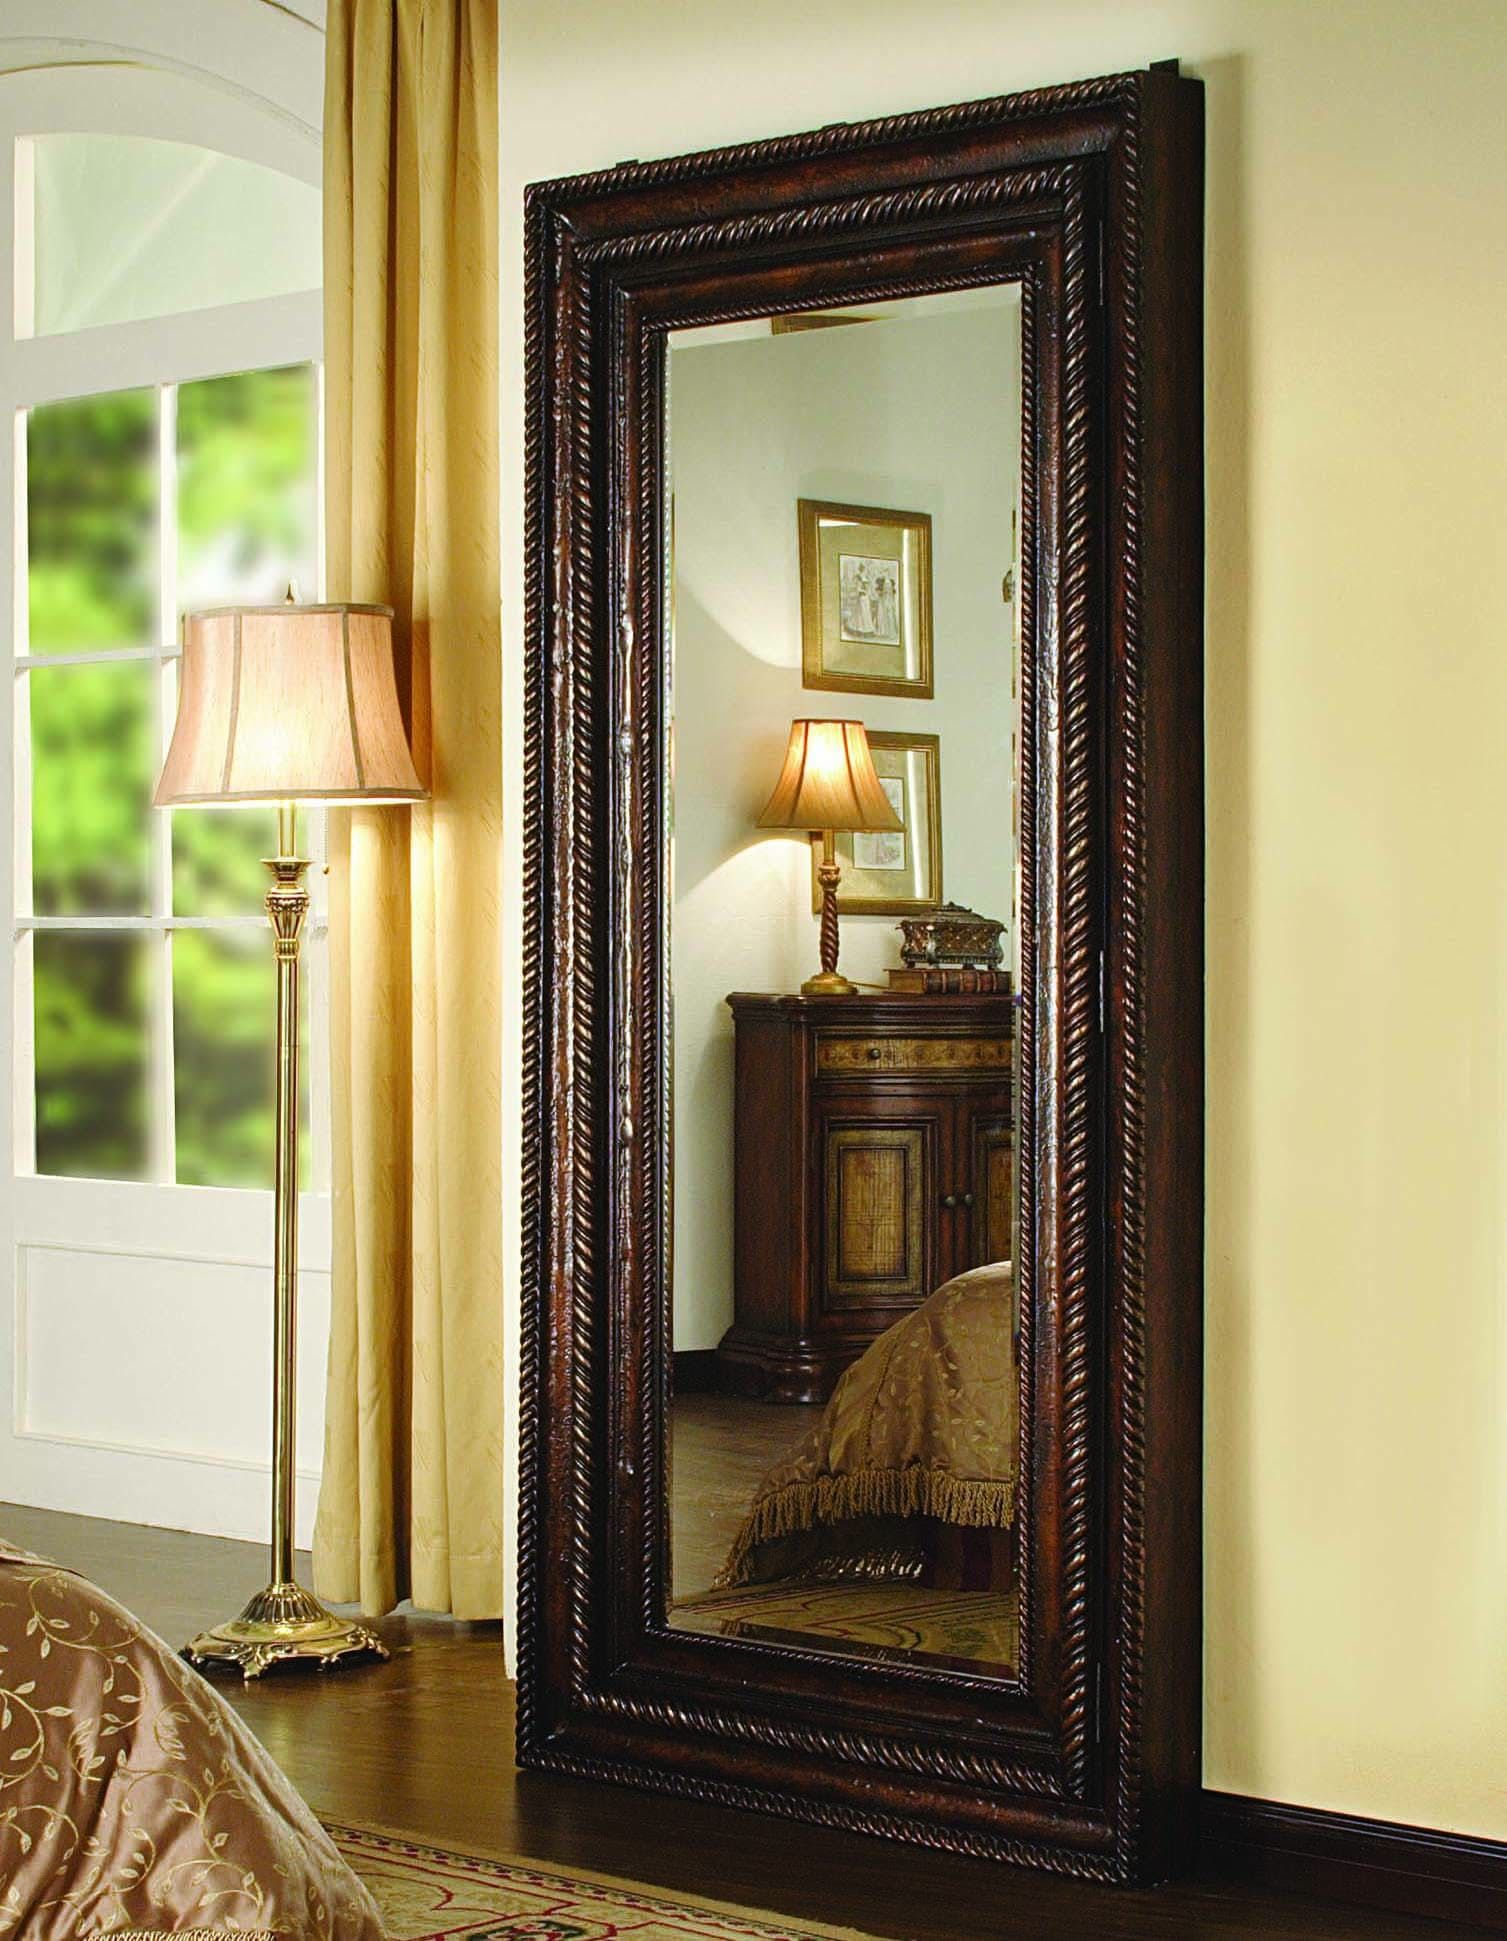 Delightful Hooker Furniture Floor Mirror W/Hidden Jewelry Storage 500 50 656